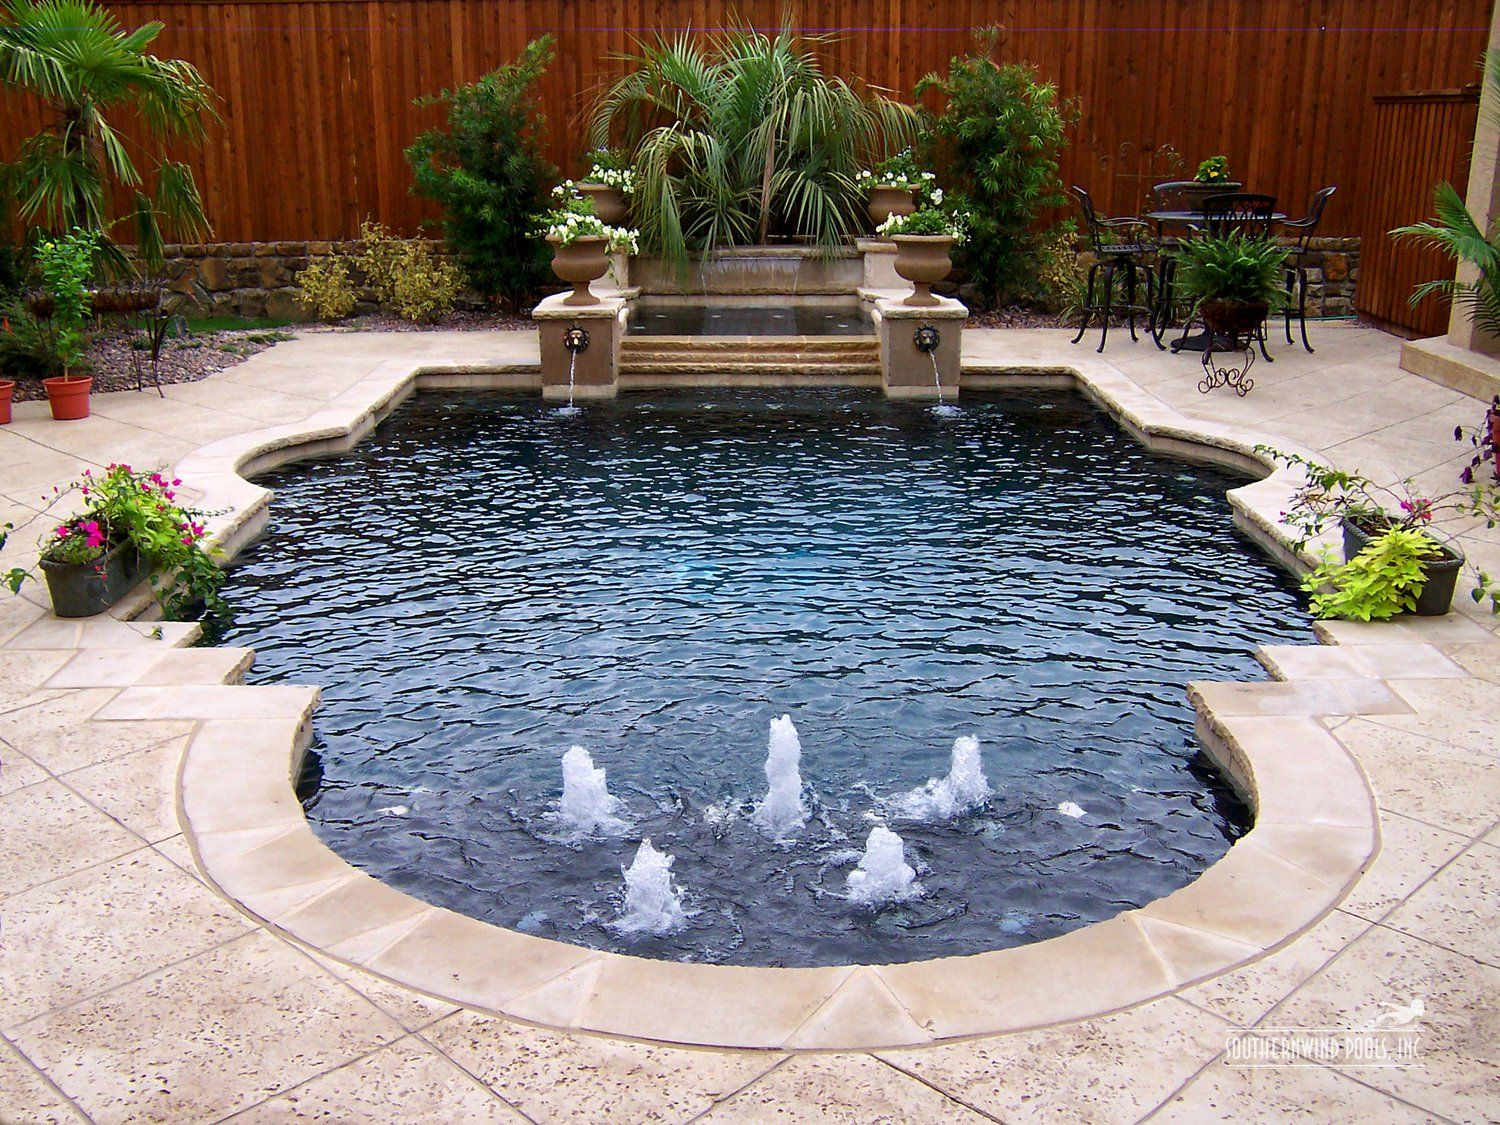 THIS IS IT A small formal pool Wouldnt you feel like a queen soaking in that spa  Fantasy